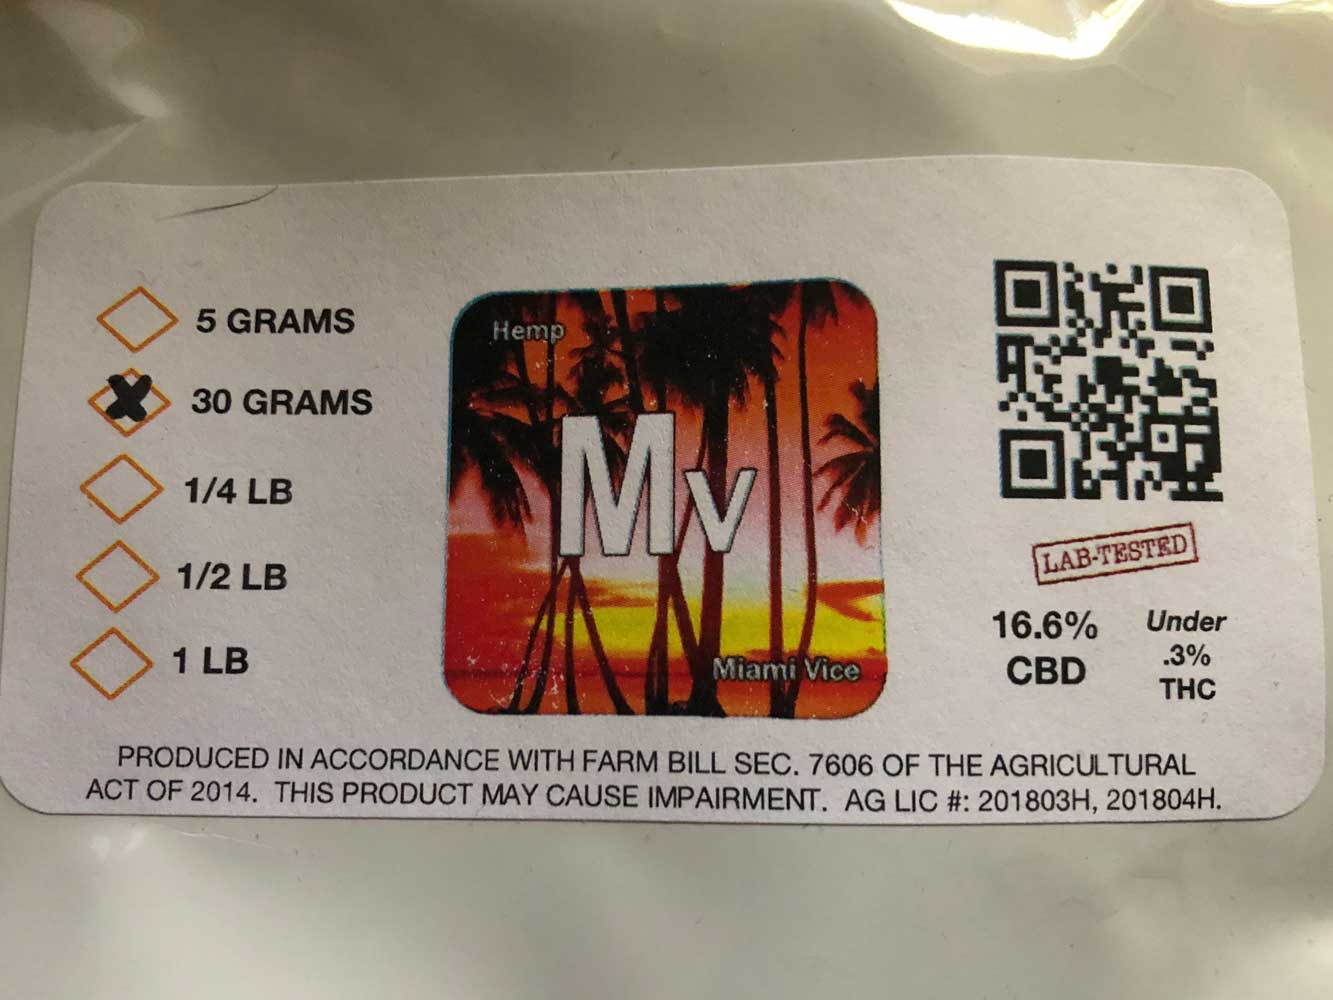 Review of Miami Vice from CBD Hemp Direct - mjgeeks